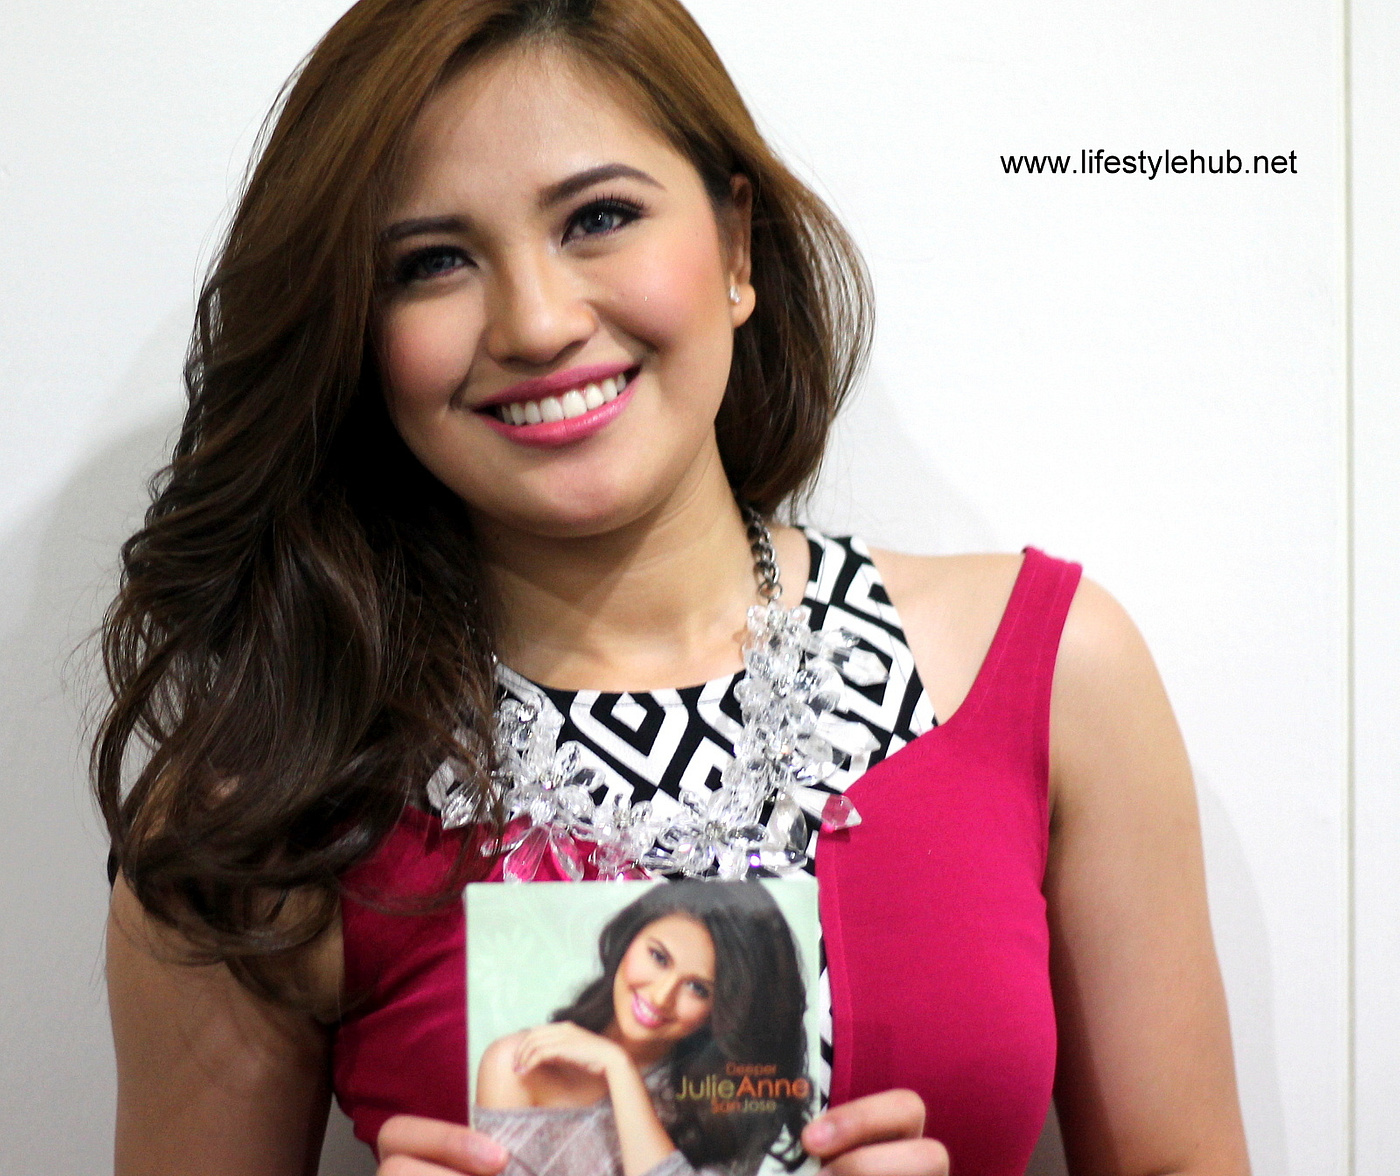 julie anne san jose deeper album launch